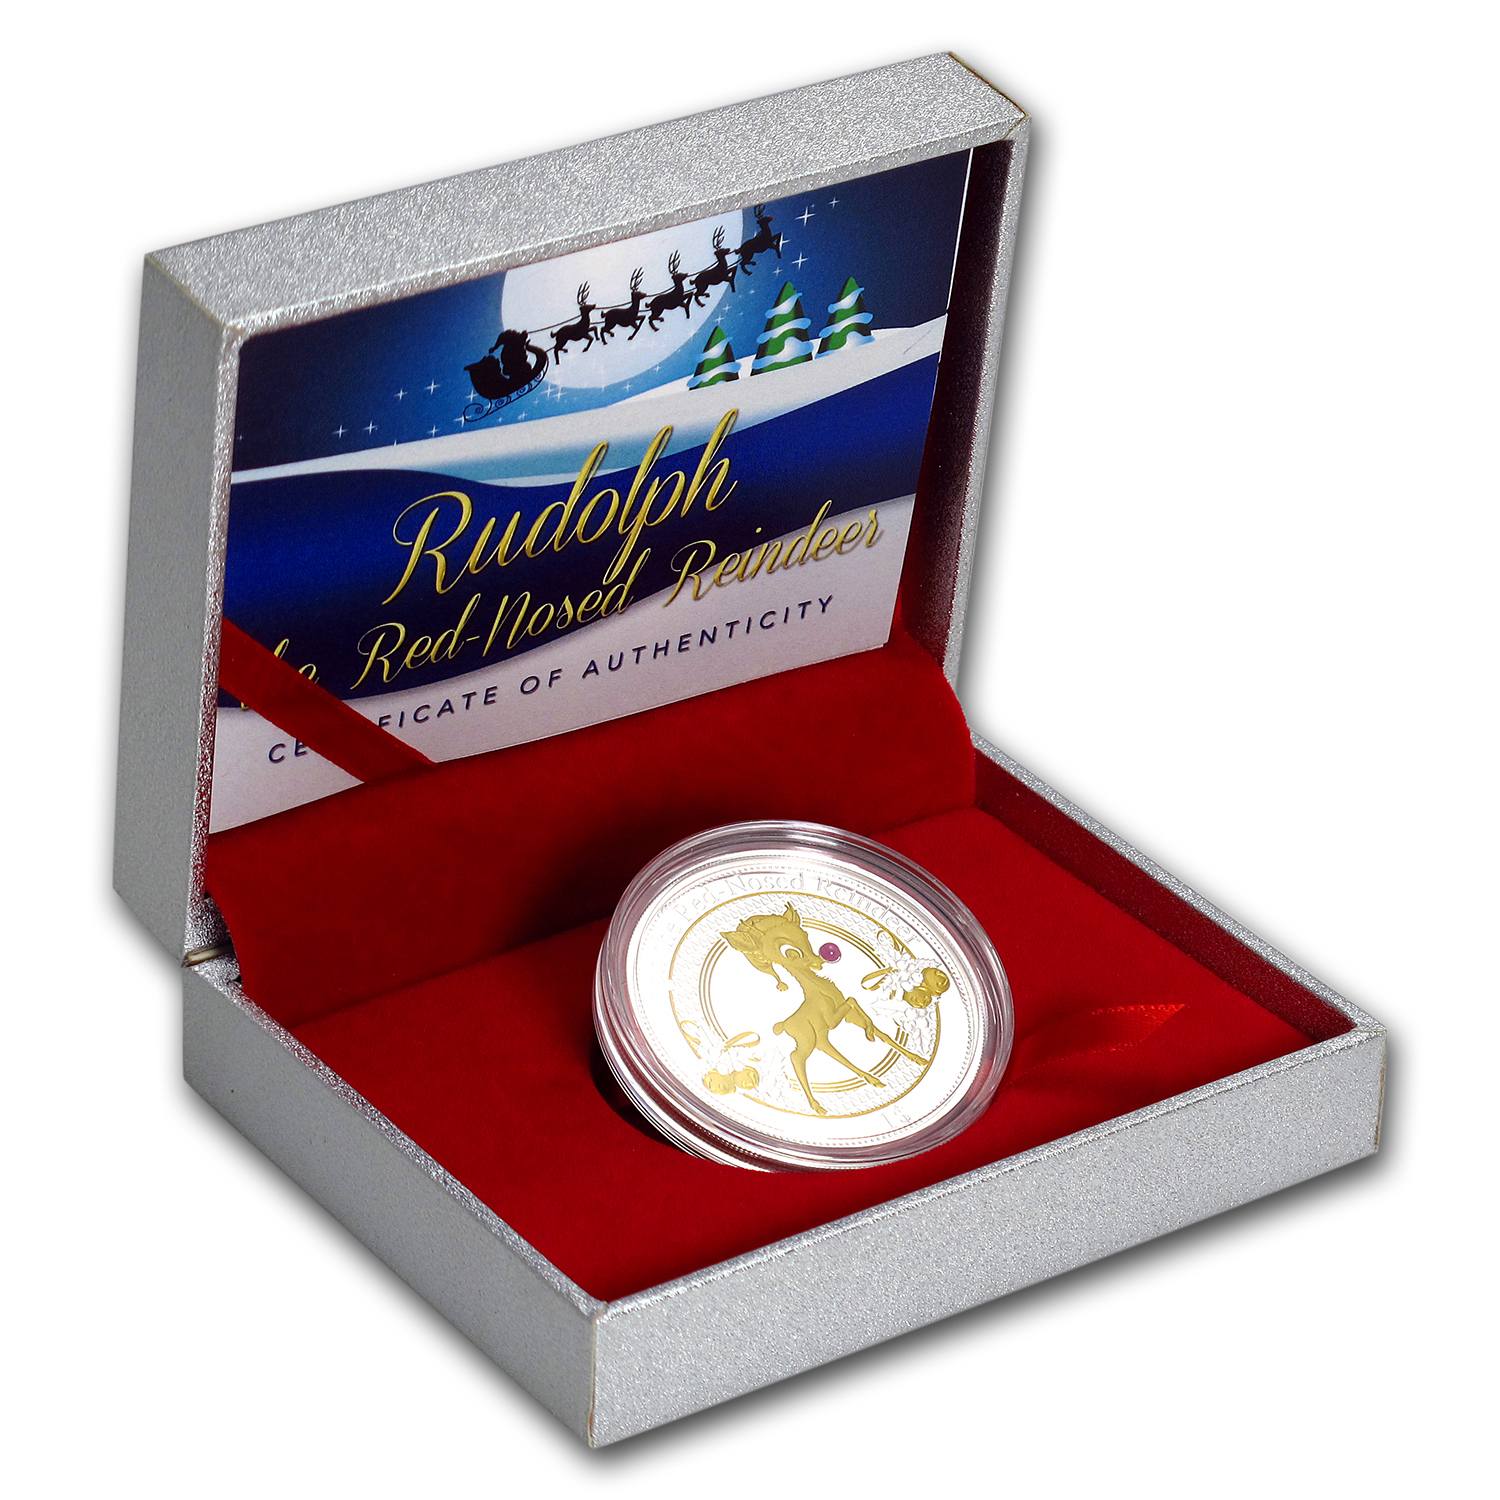 2016 Christmas Island Proof Silver Rudolph the Red-Nosed Reindeer